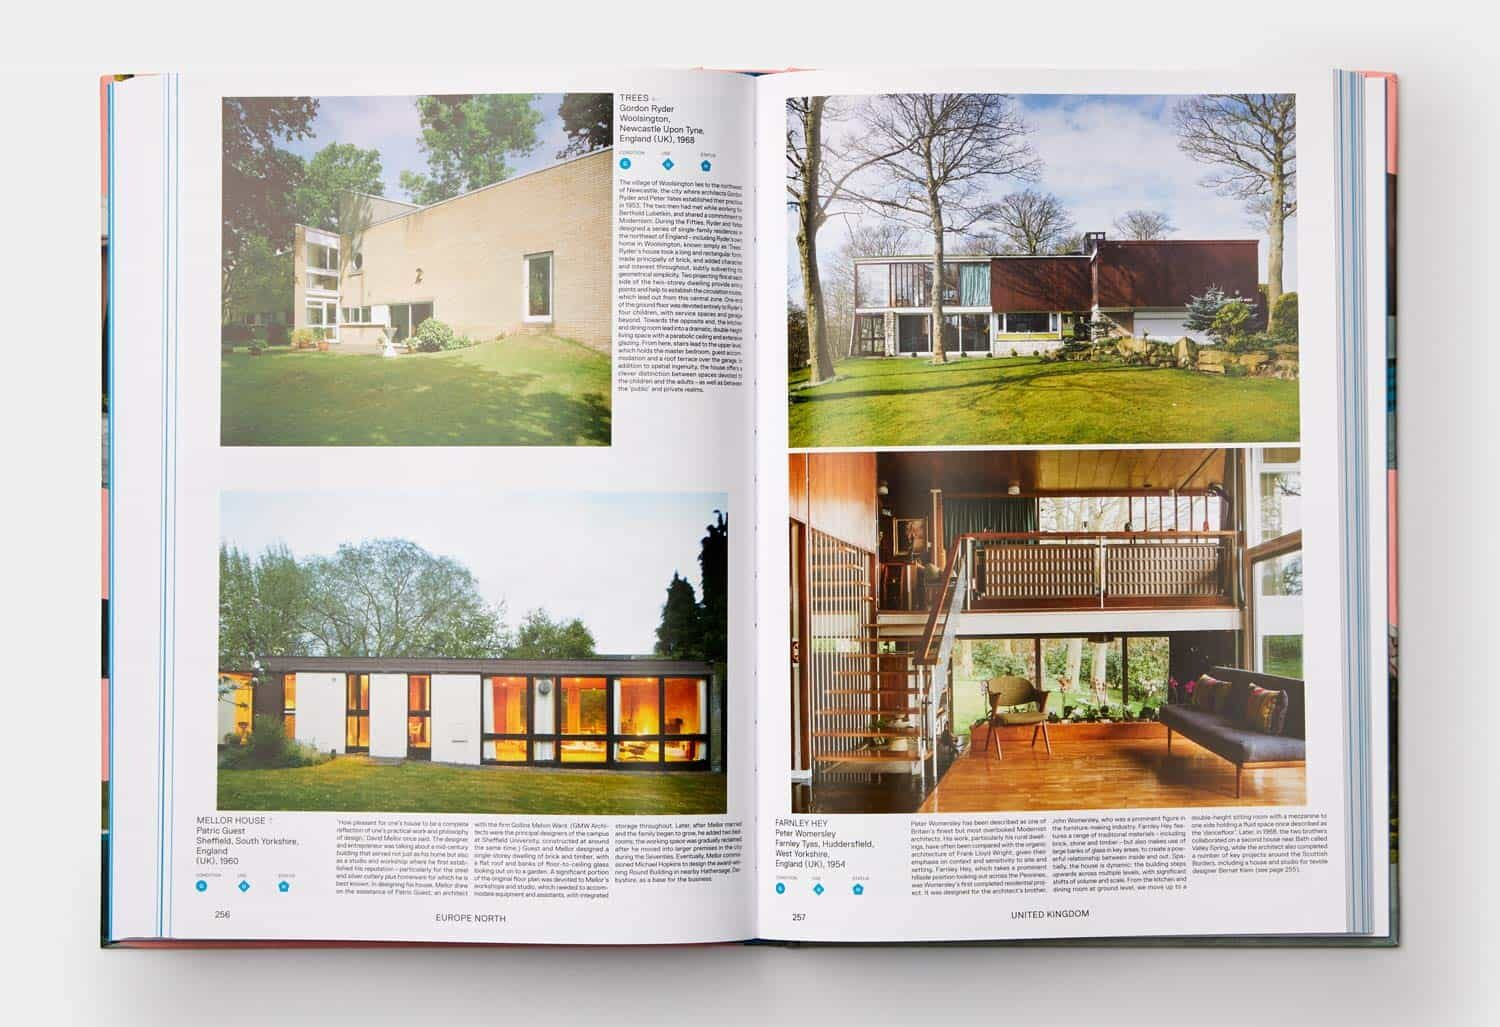 this is inside of the atlas of mid century modern houses